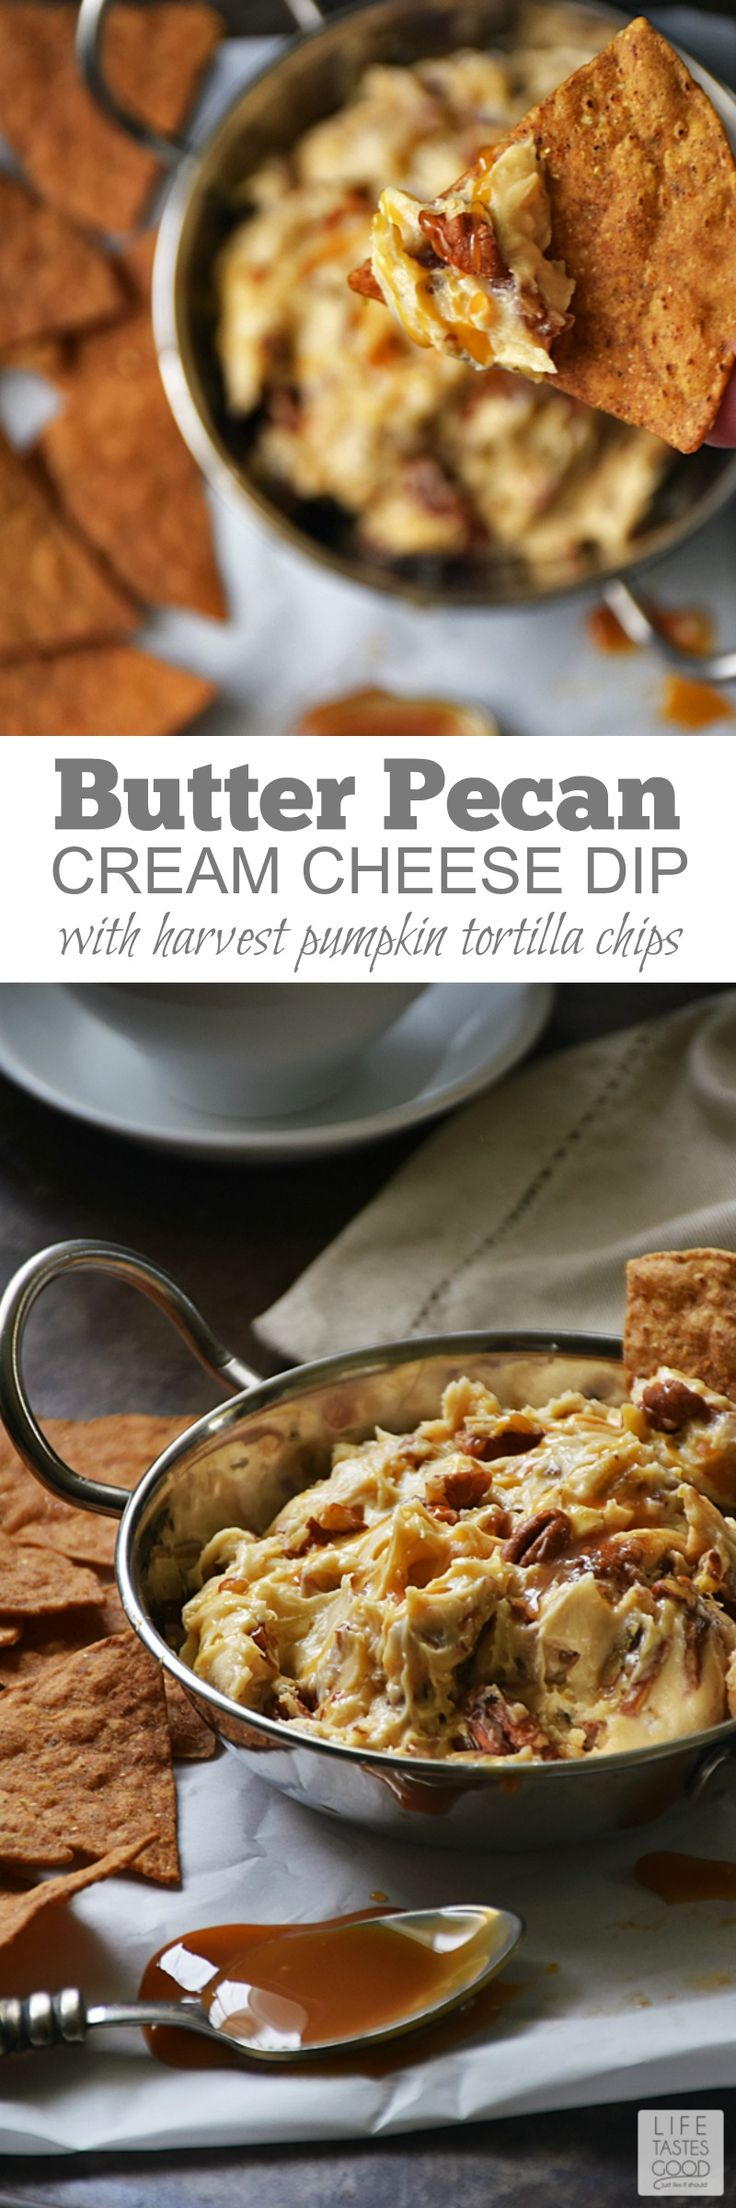 Butter Pecan Cream Cheese Dip   by Life Tastes Good with Harvest Pumpkin Tortilla Chips is like eating a creamy Pumpkin Pecan Pie, only better, because this sweet treat is super easy to make! #sponsored #LTGrecipes #FoodShouldTasteGood @fstgchips